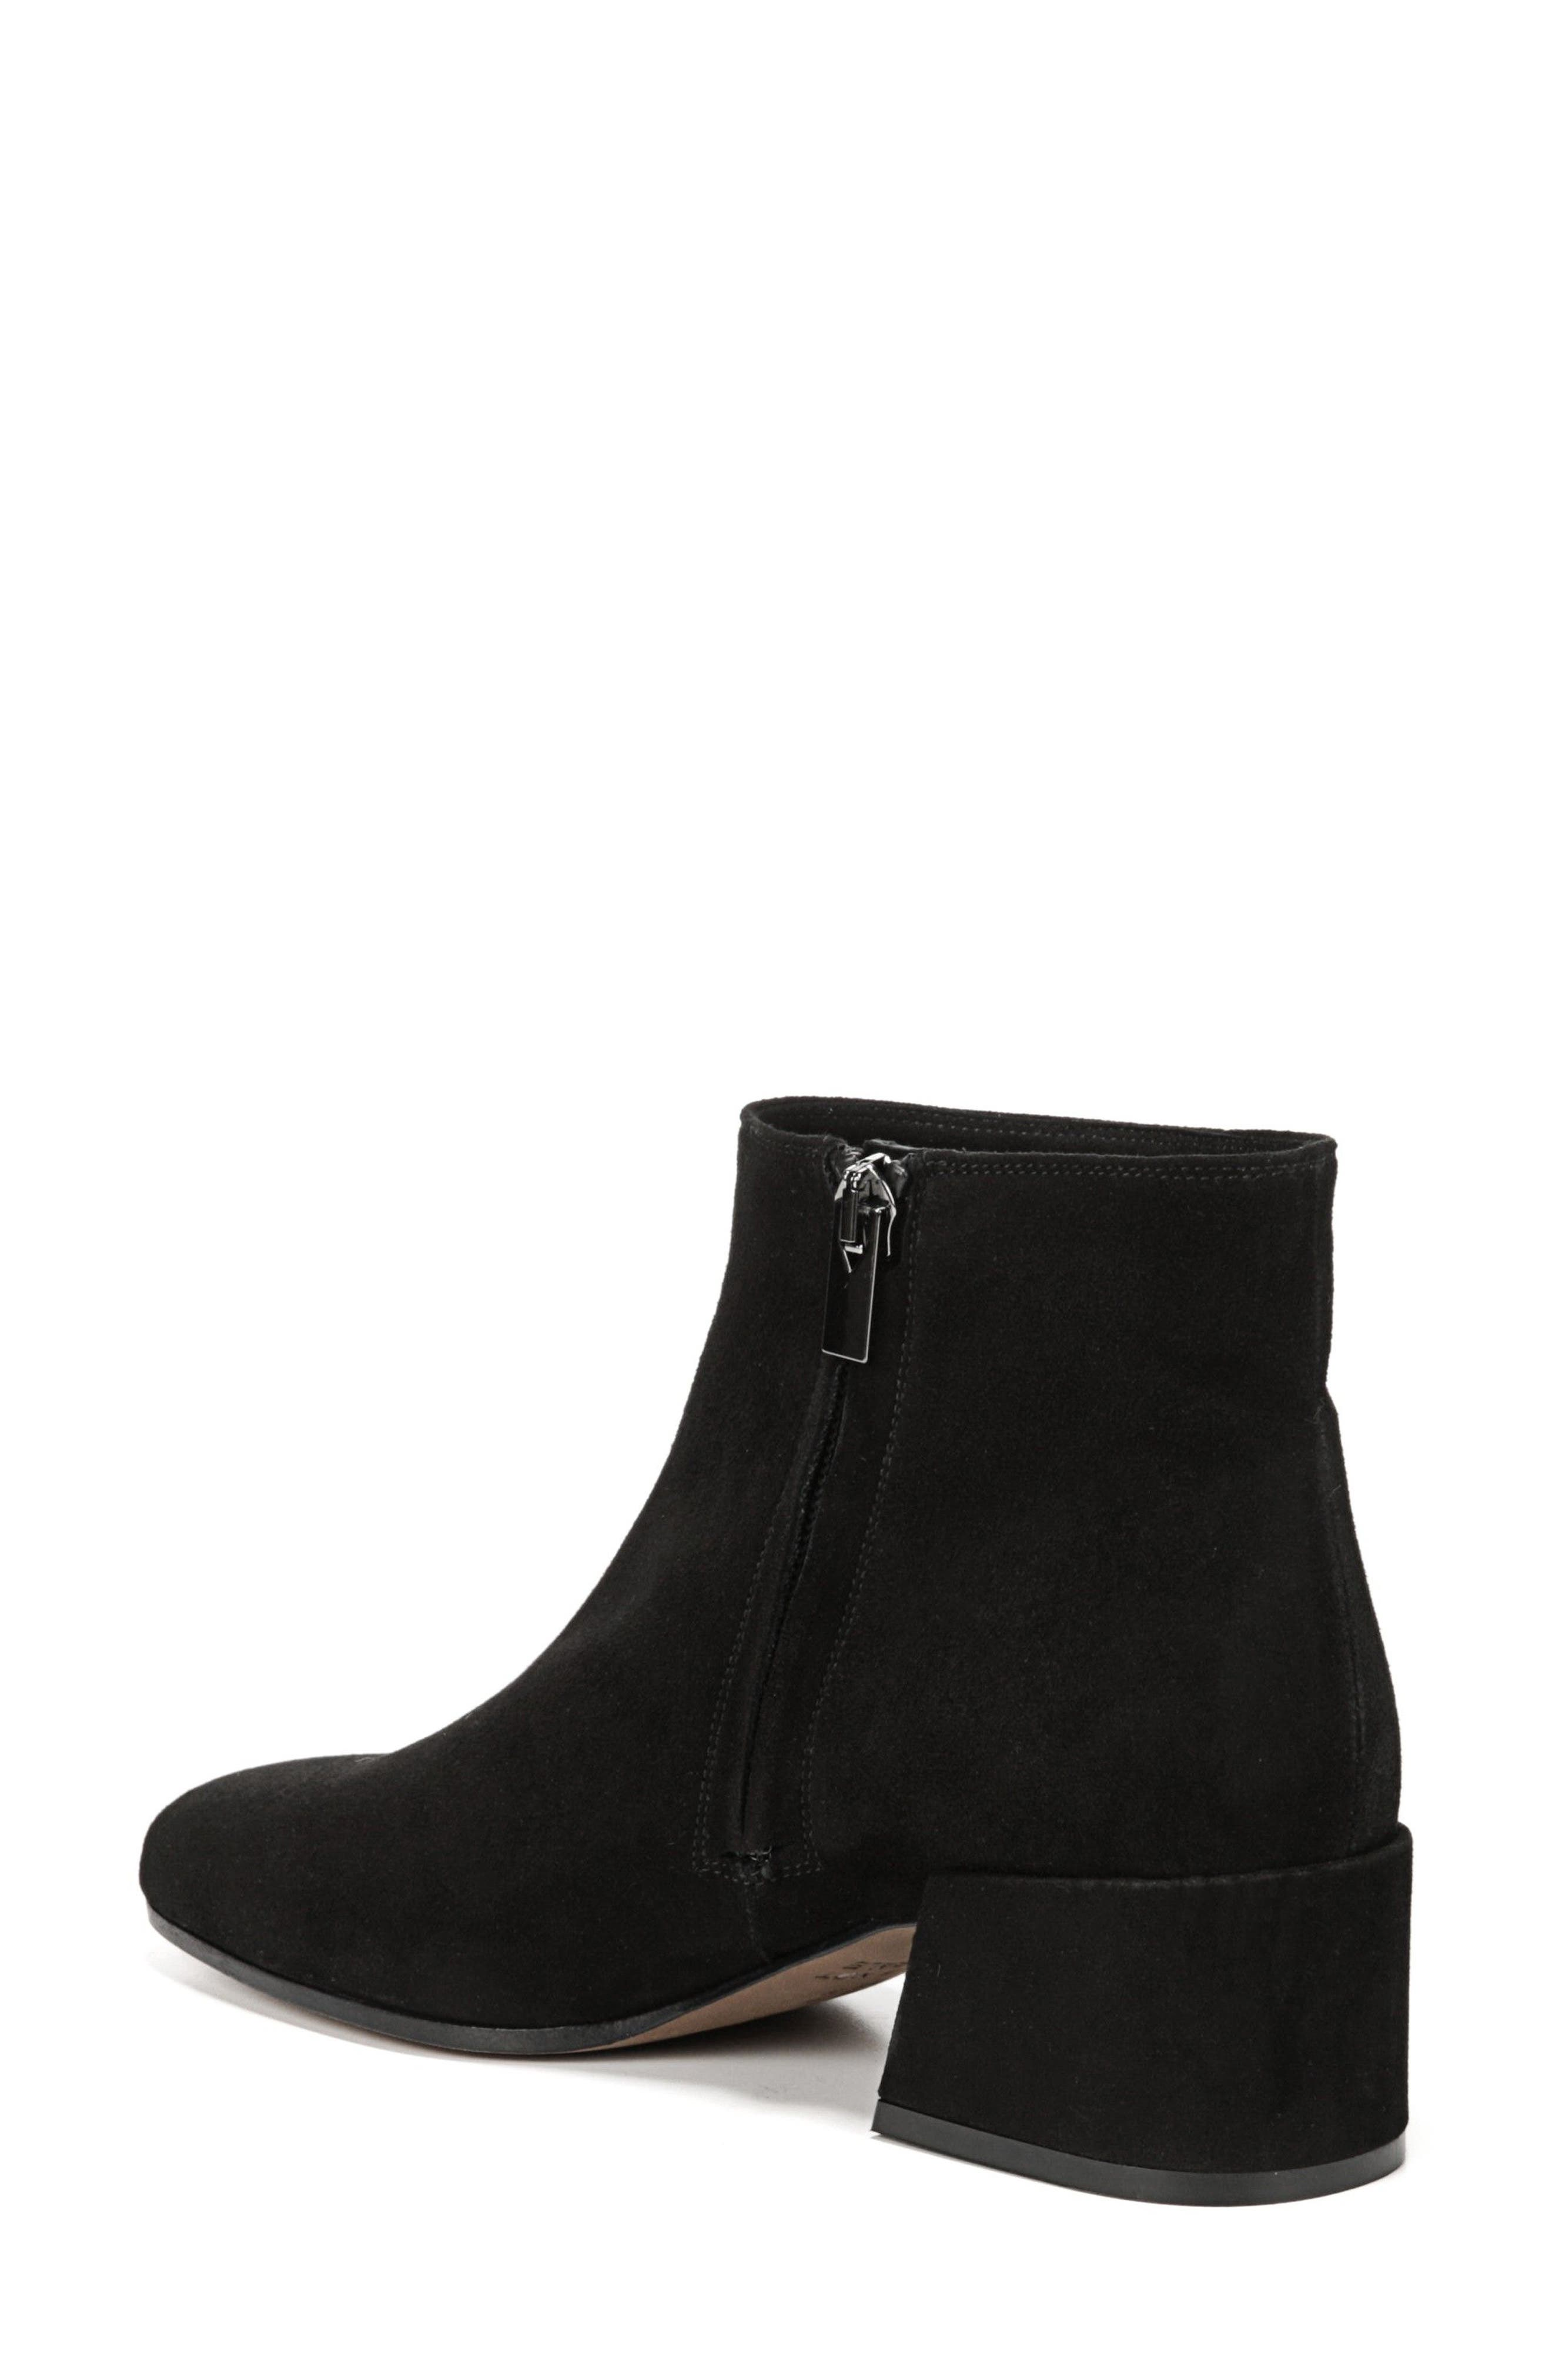 Ostend Bootie,                             Alternate thumbnail 5, color,